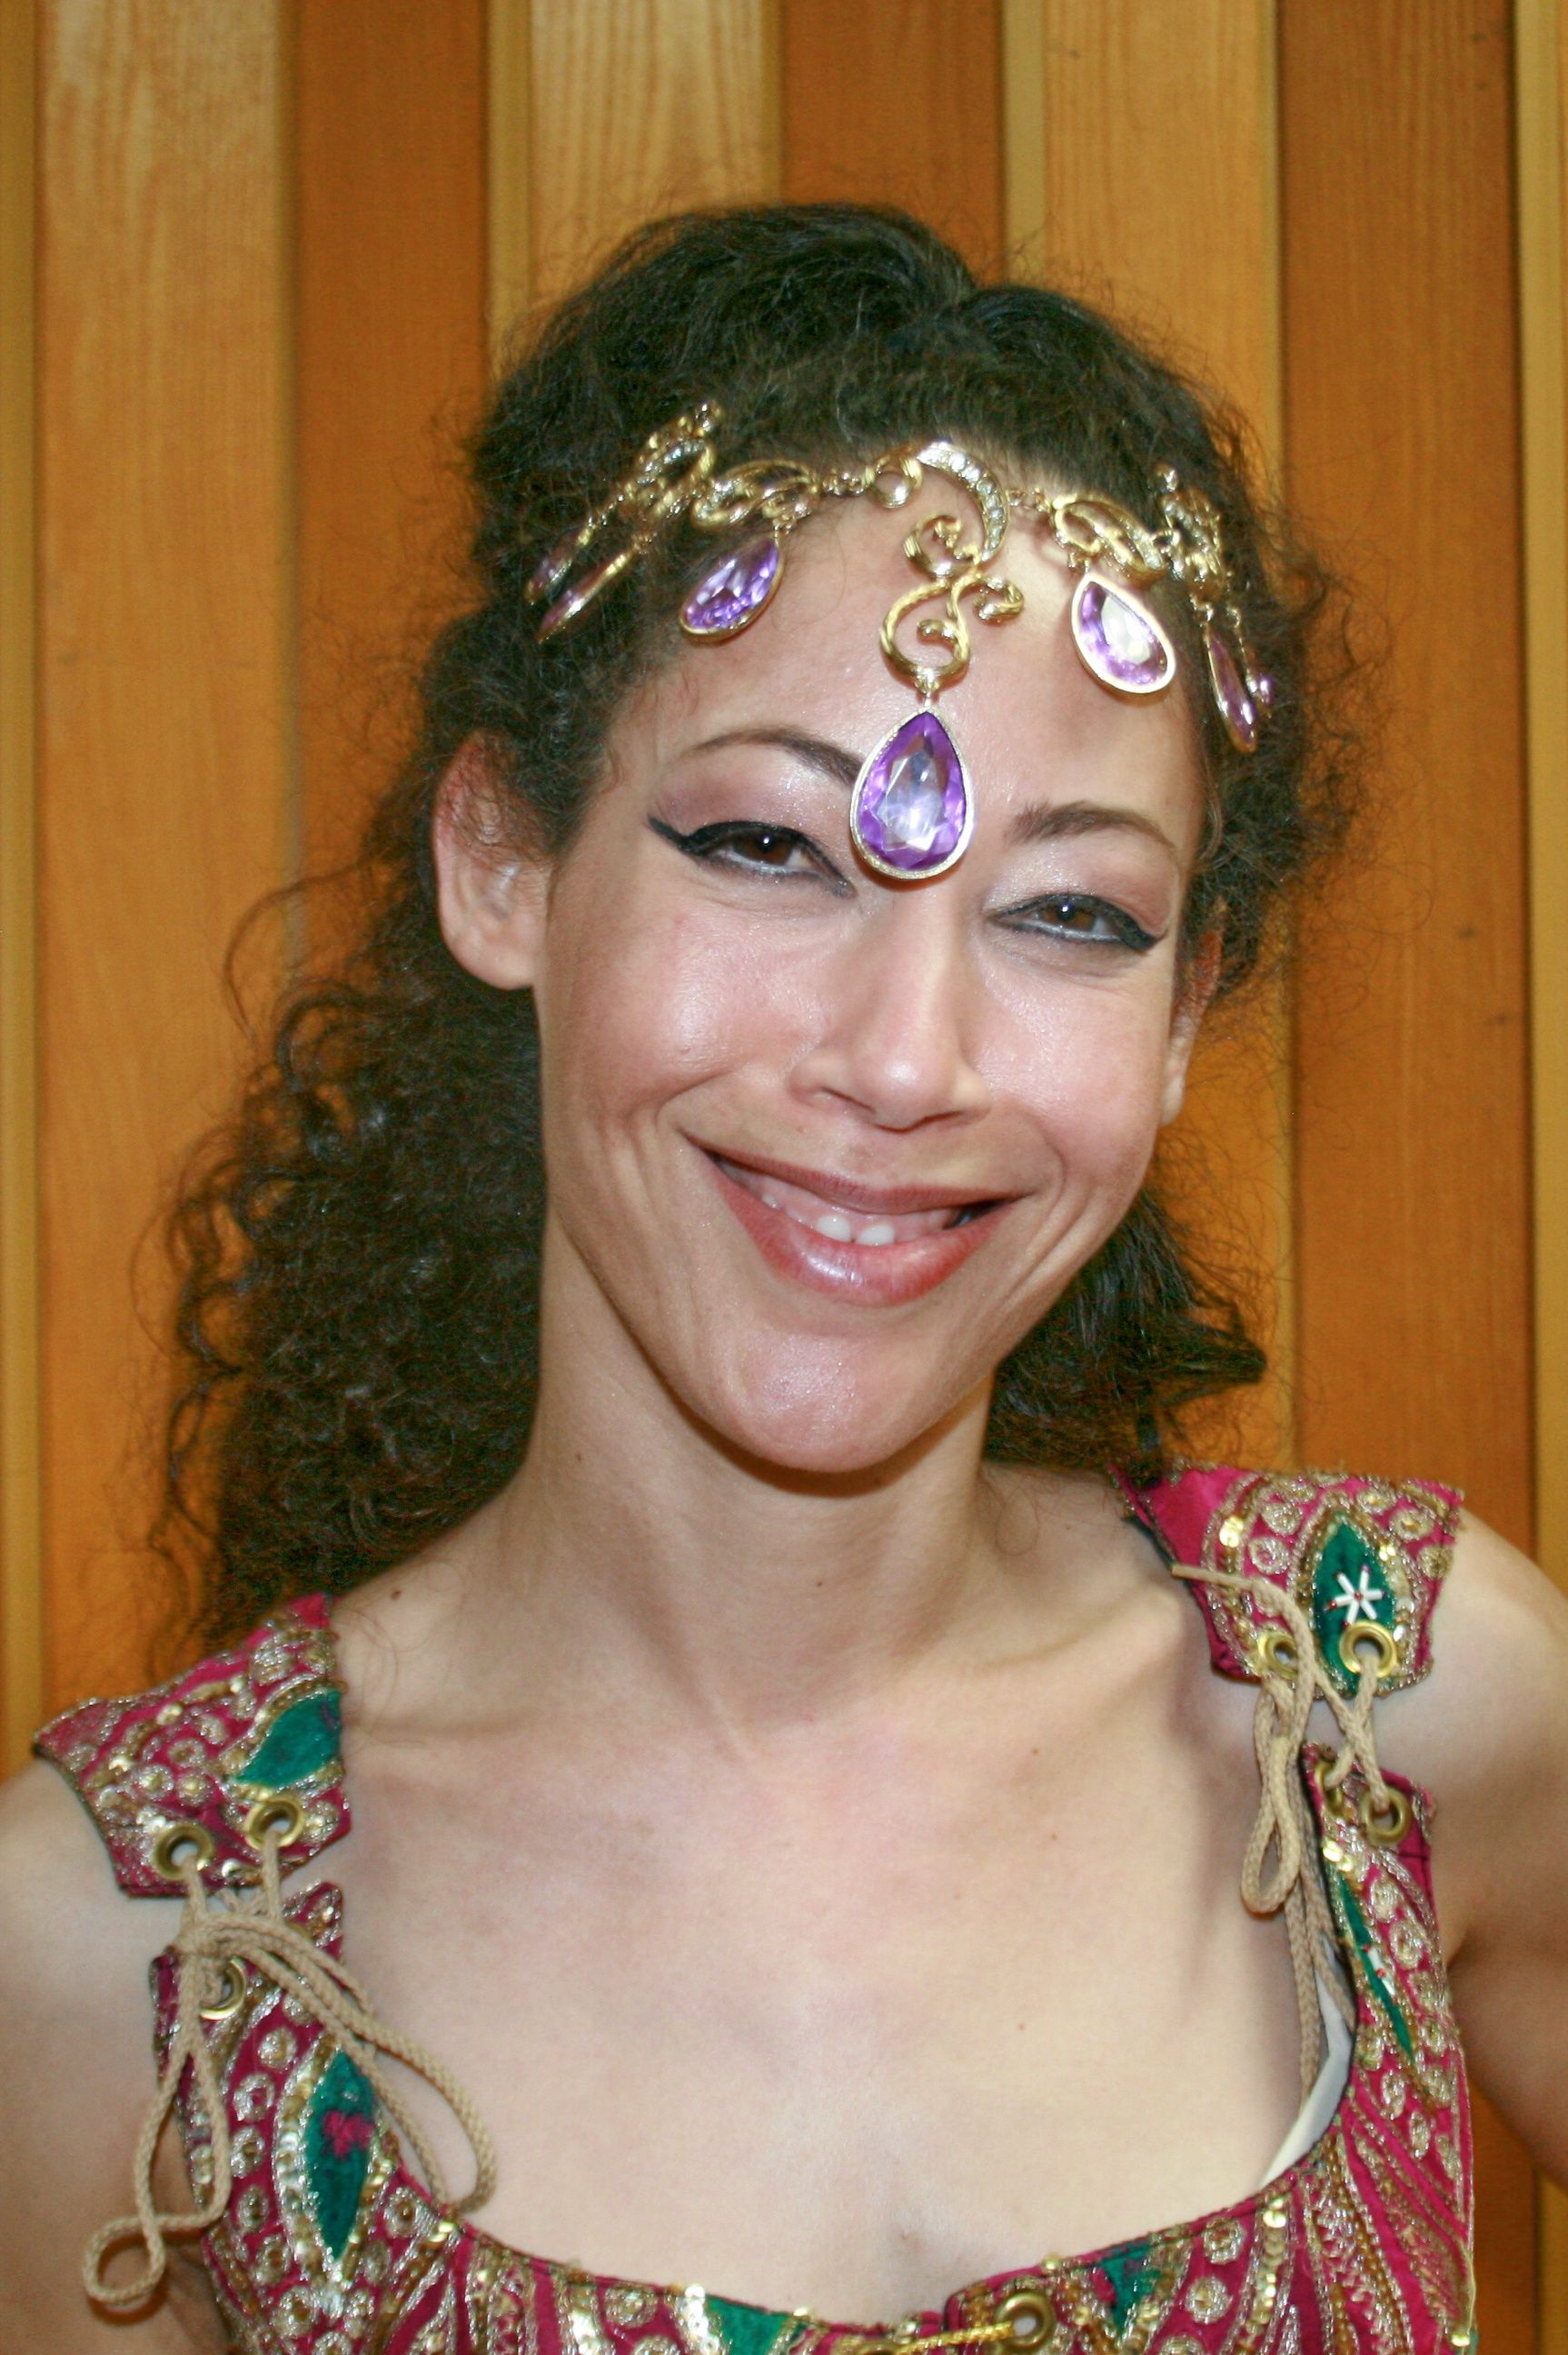 The South Florida Bellydance Meetup Group